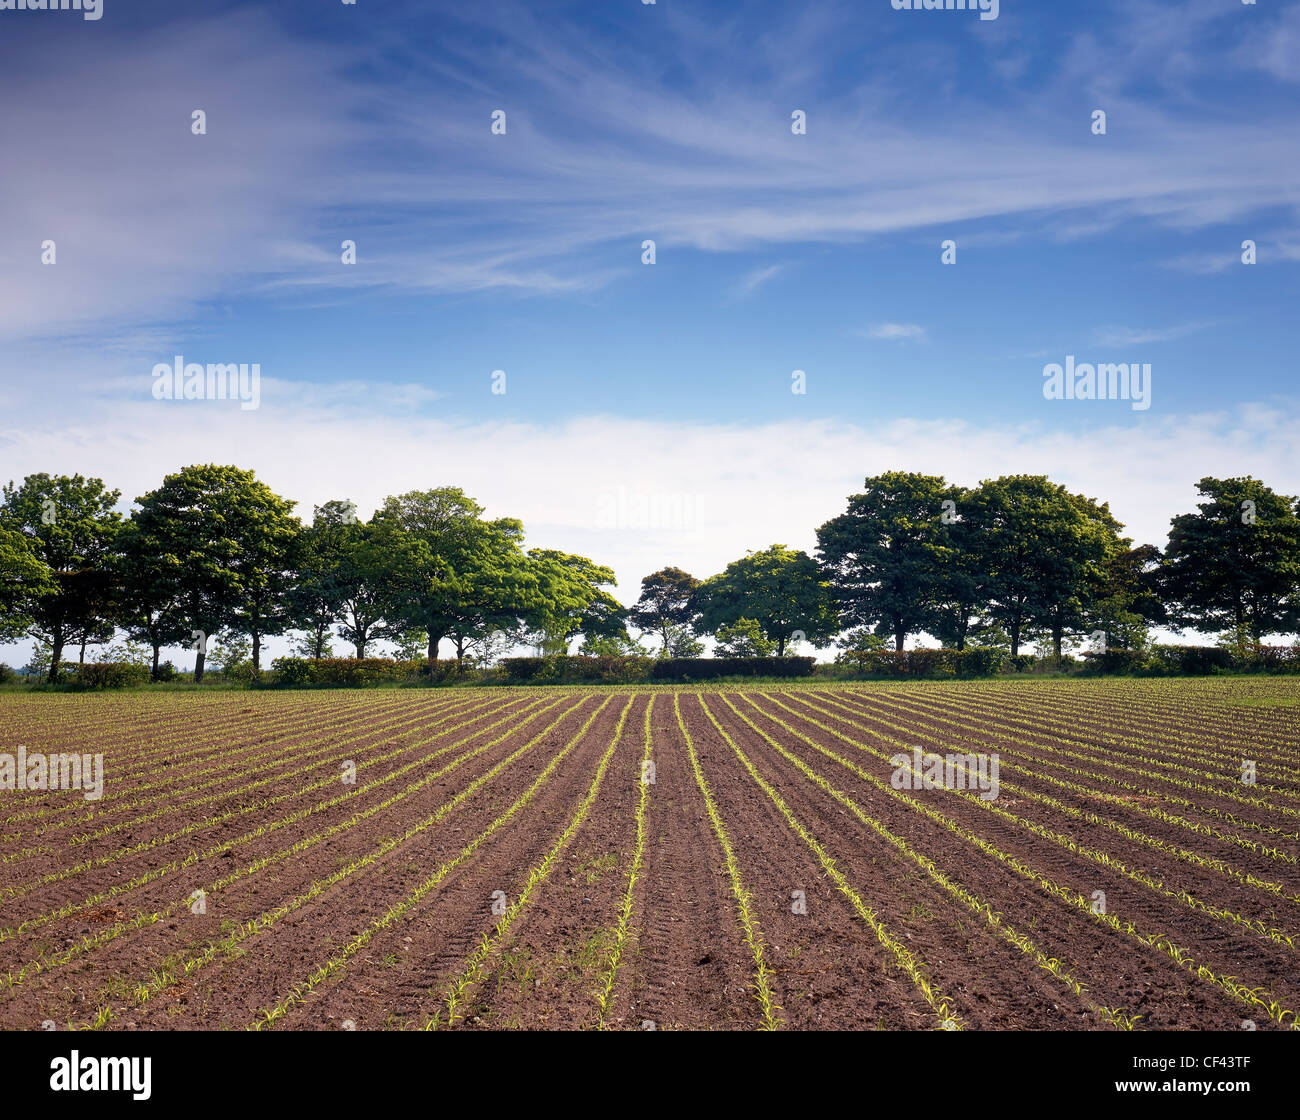 Rows of crops begin to sprout as a new growing season begins. - Stock Image